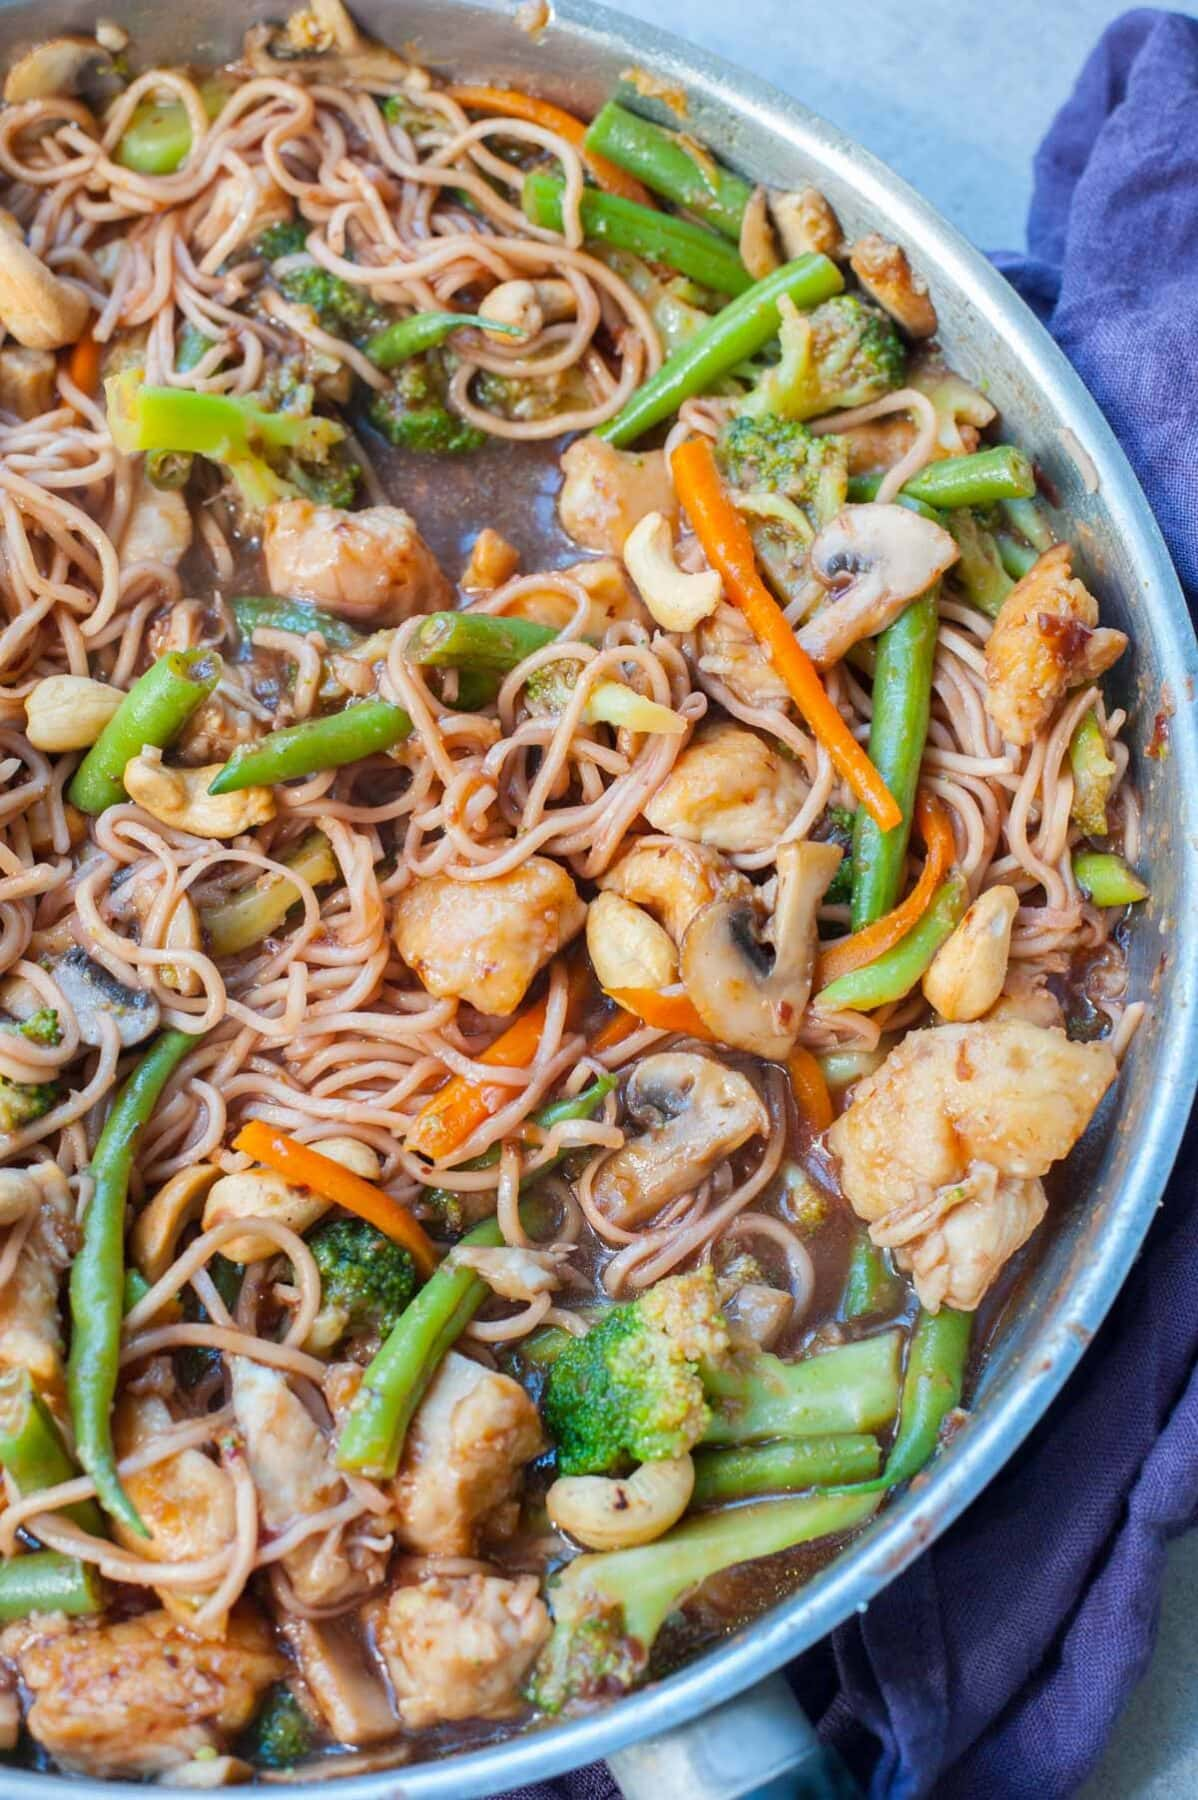 chicken, noodles, vegetables and Chinese plum sauce in a frying pan